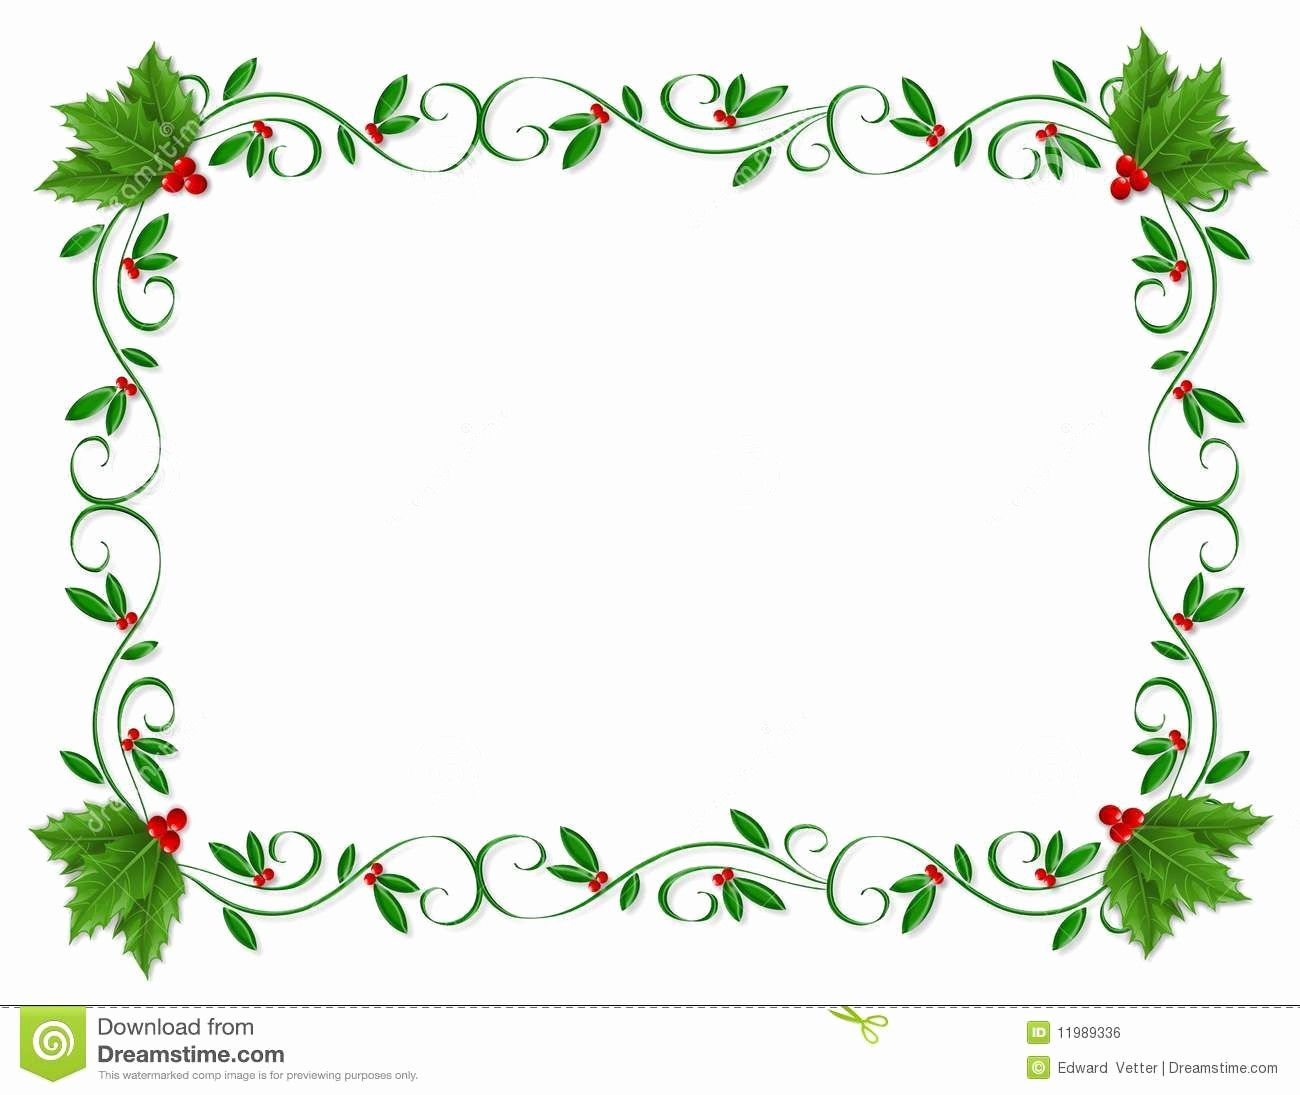 Christmas themed Borders for Word Awesome Christmas Border Holly ornamental Download From Over 53